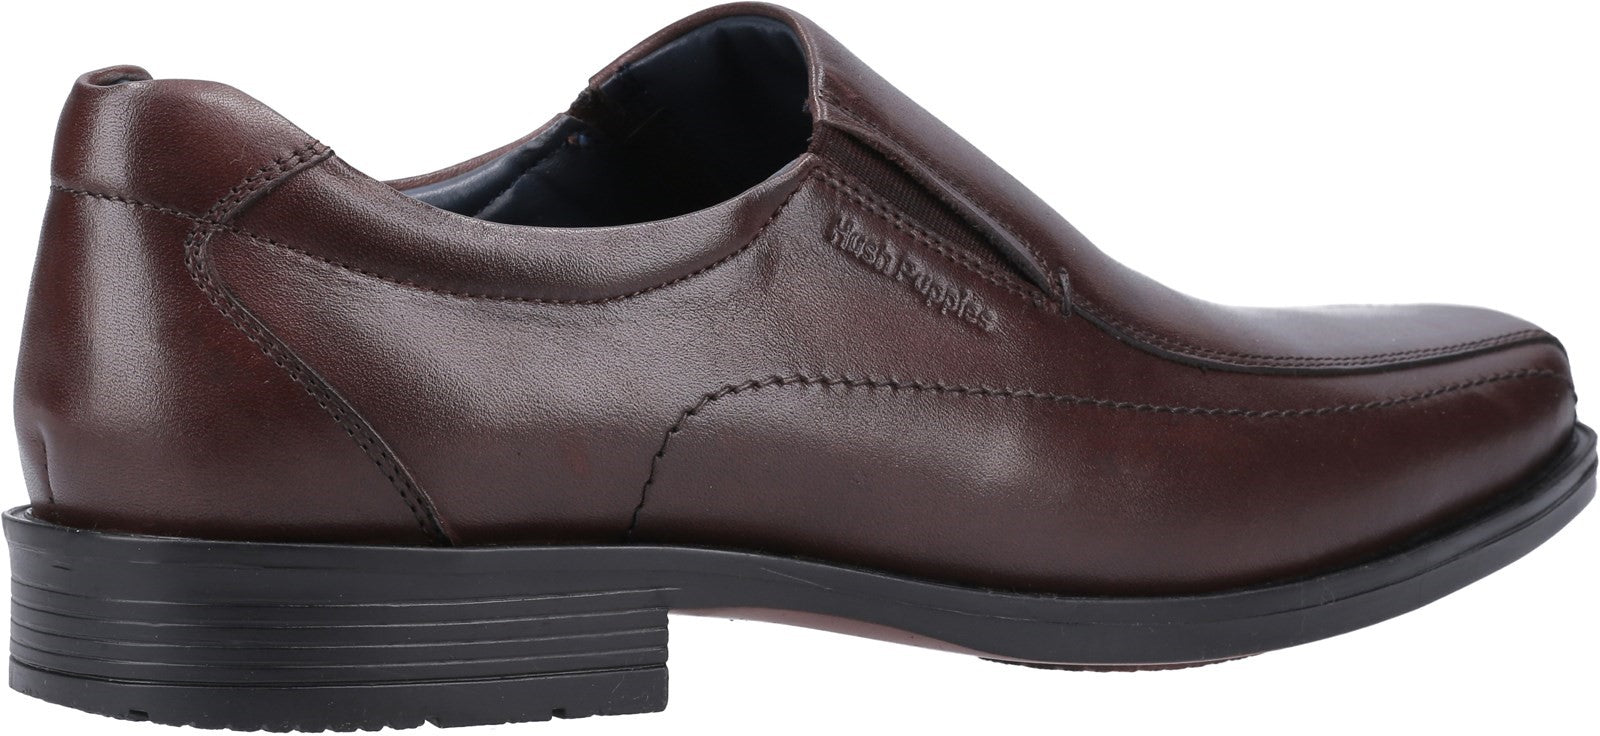 BROWN Brody Slip On Shoe